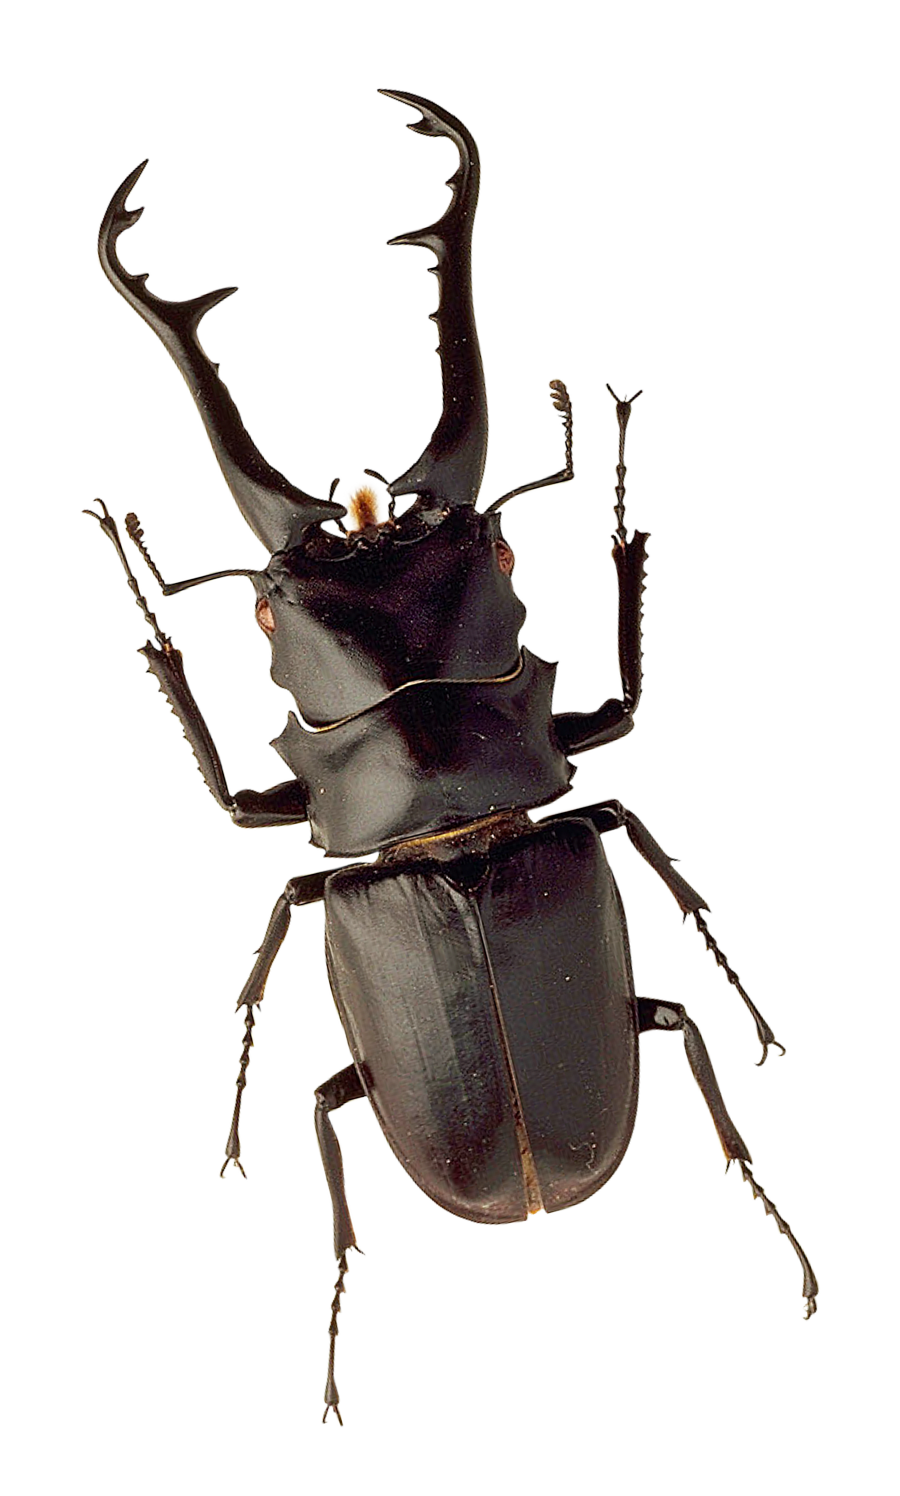 Beetle transparent. Png images pluspng insect